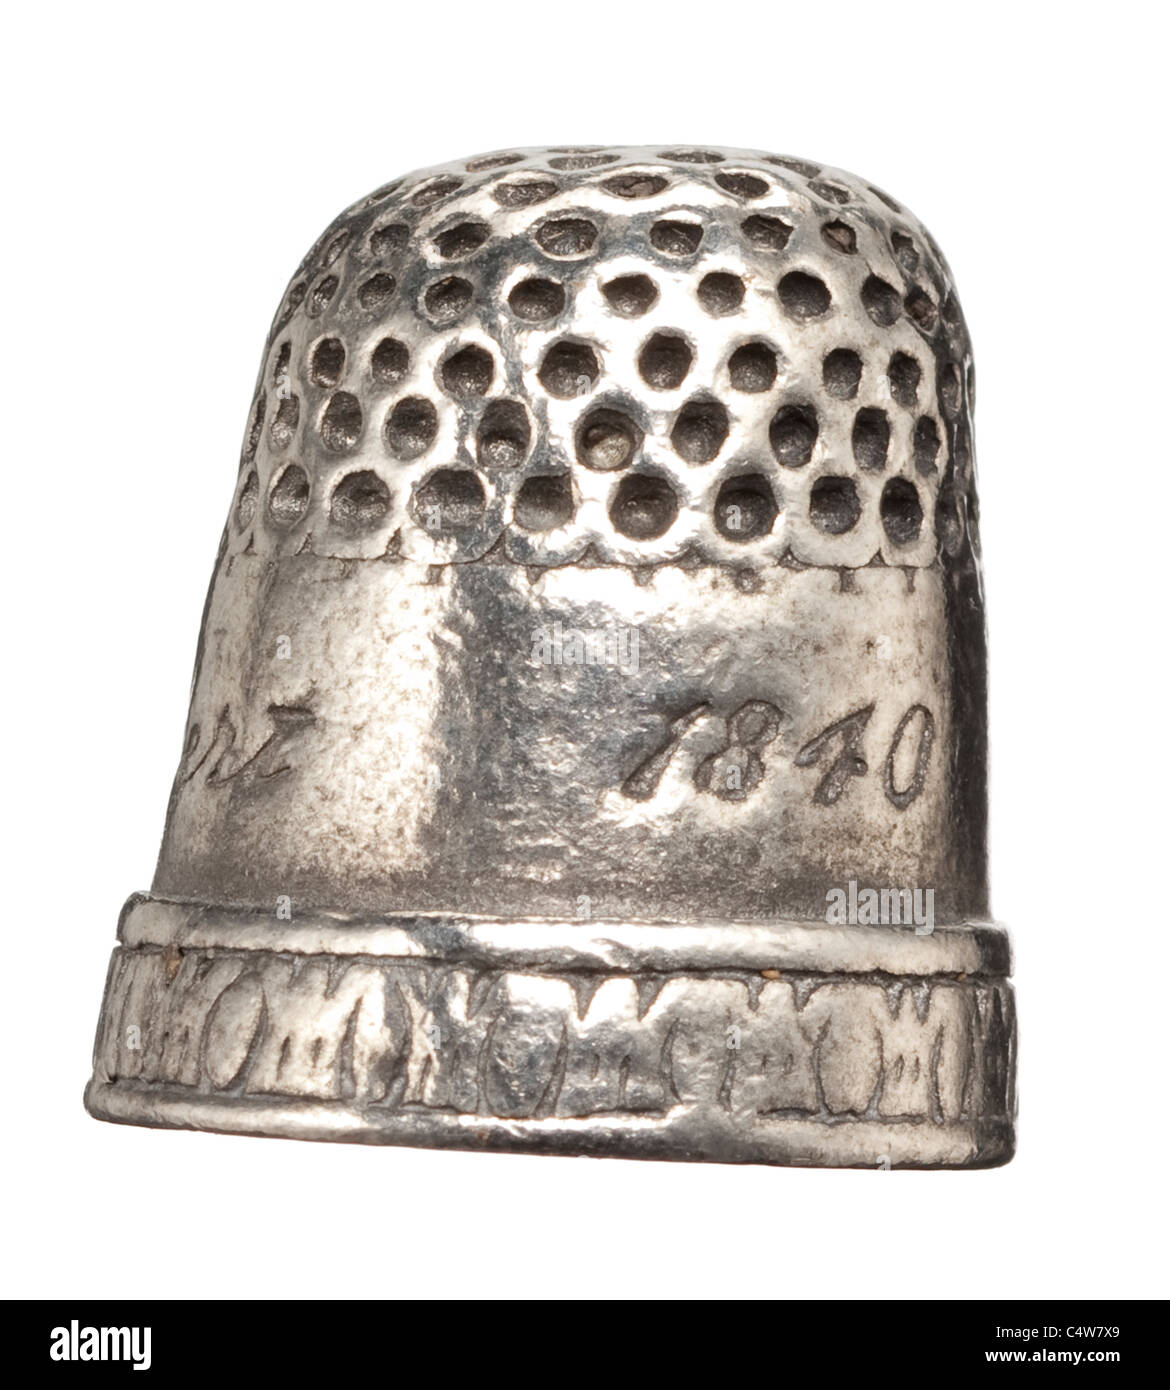 Antique silver thimble - Stock Image